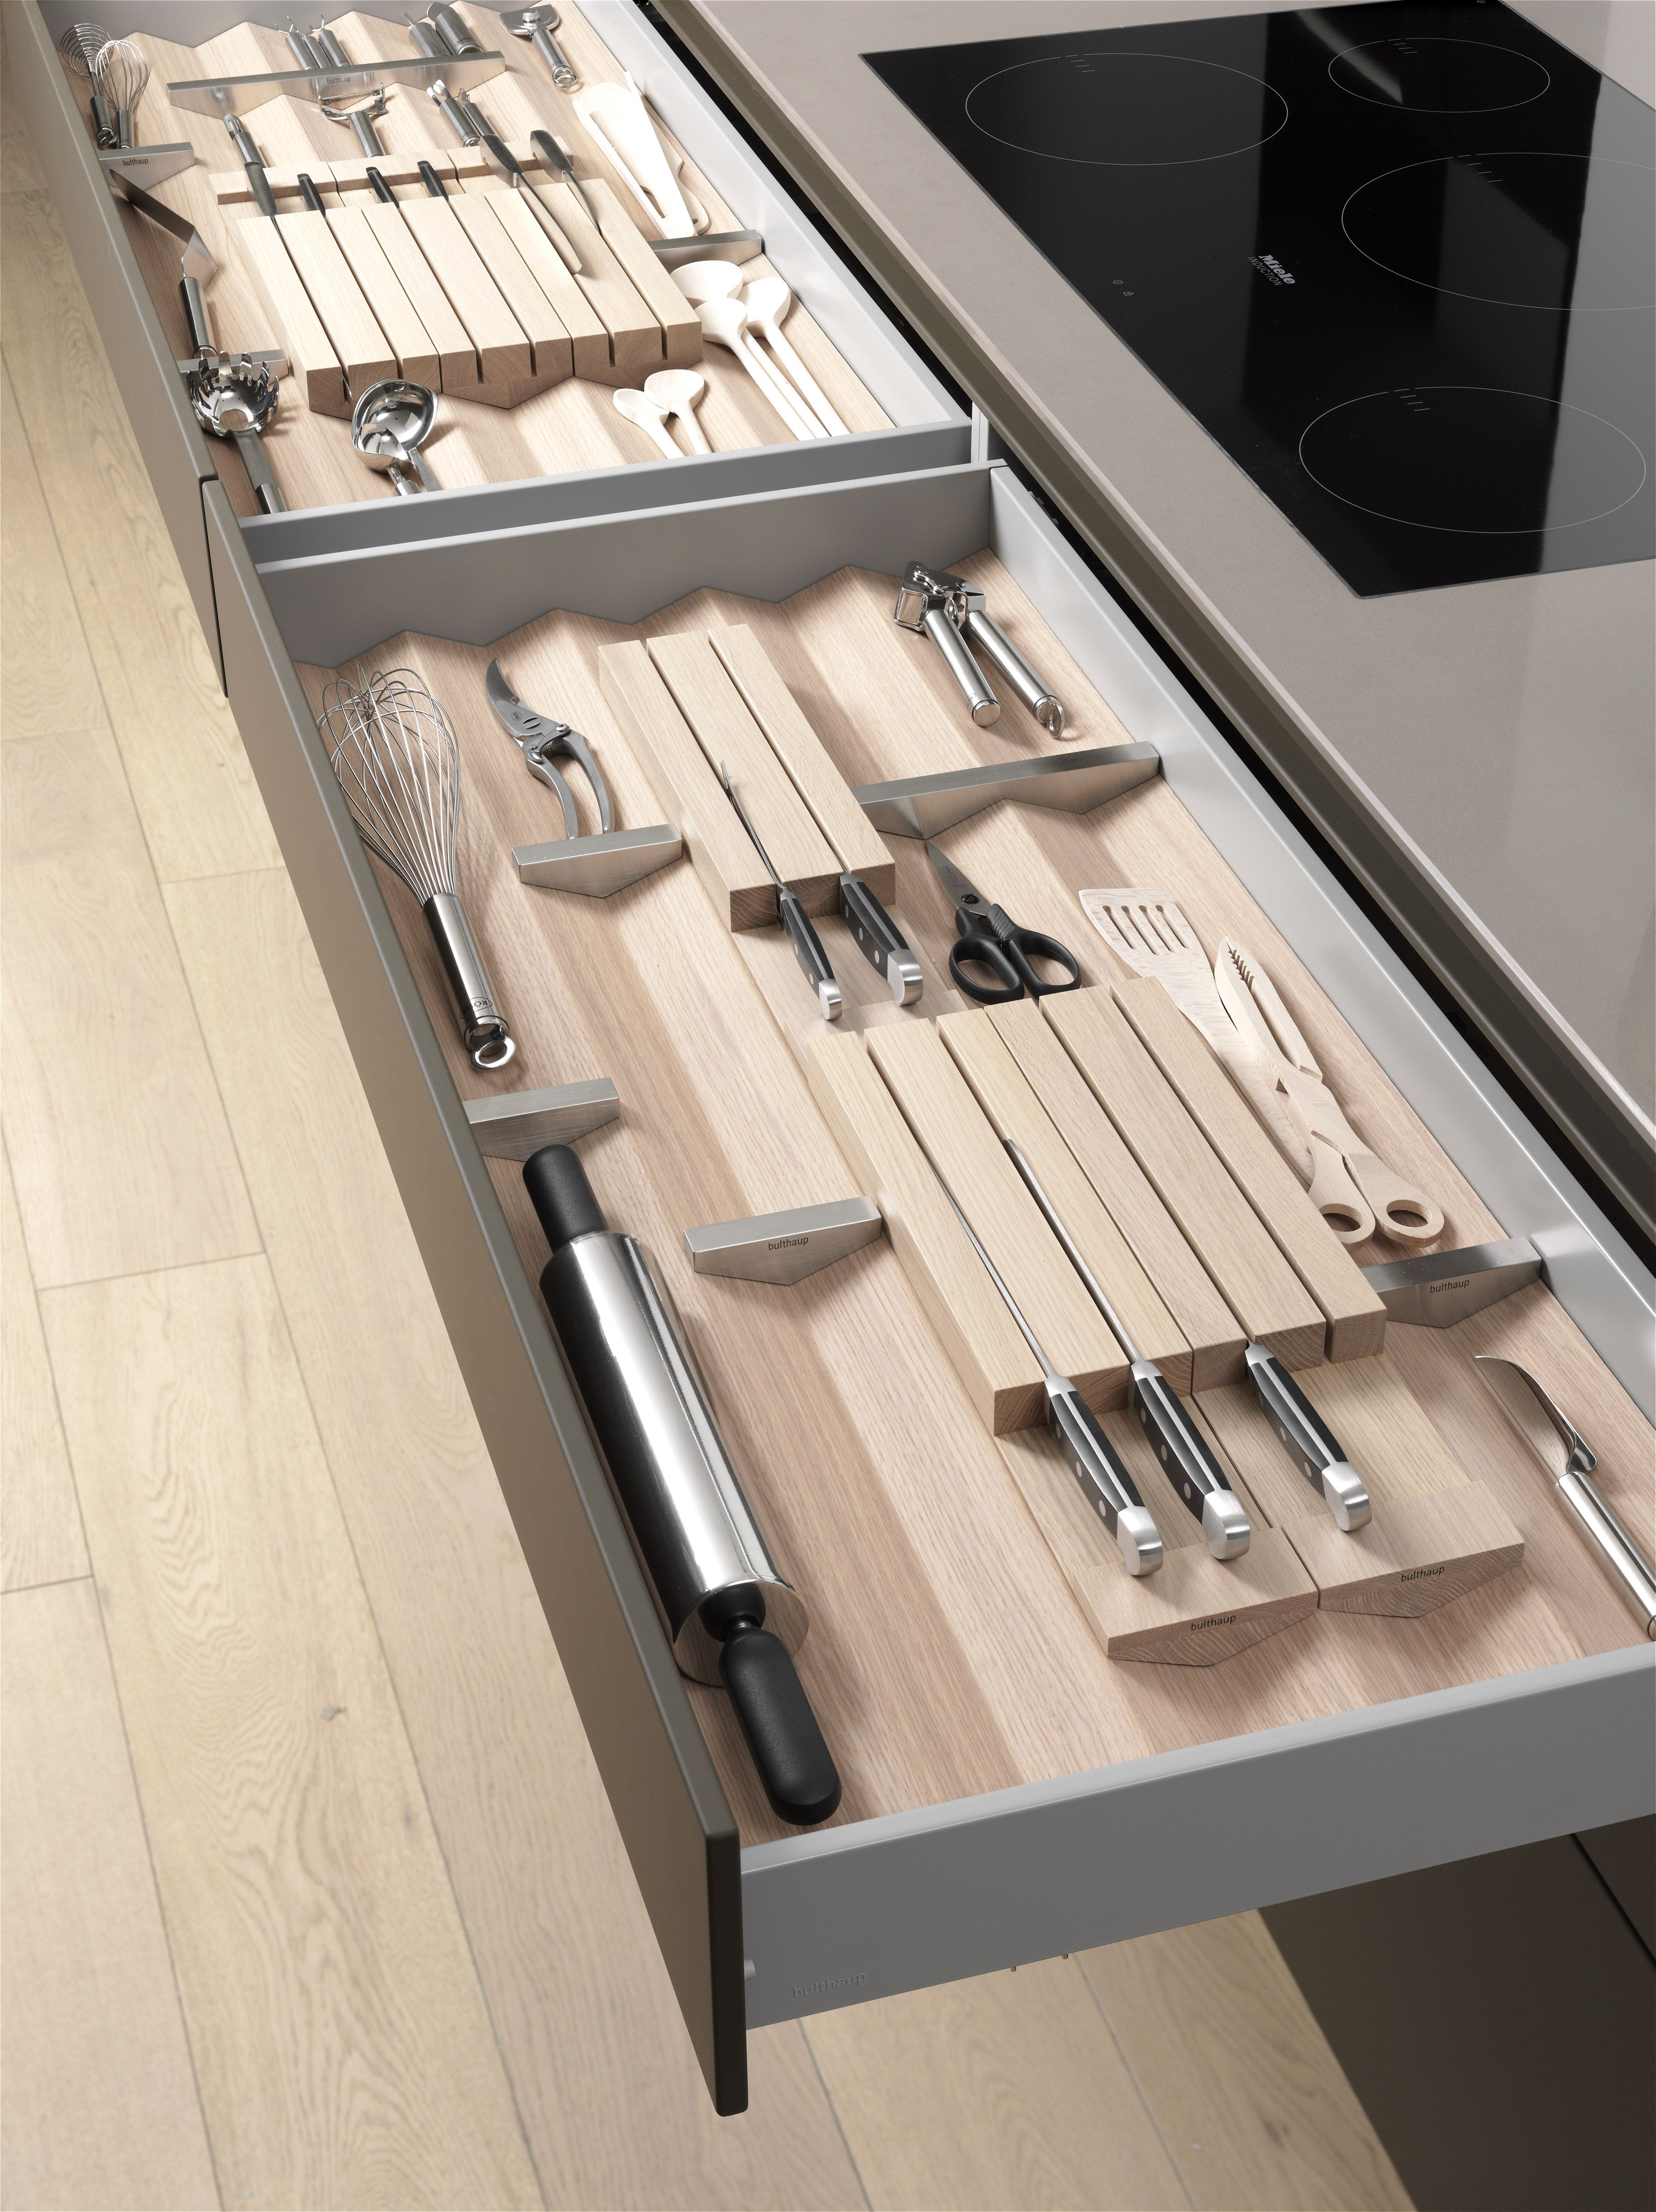 Bulthaup Drawers Www Bulthaupsf Com Design Kitchen Bulthaup Kitchen Utensil Storage Kitchen Drawers Kitchen Organization Diy